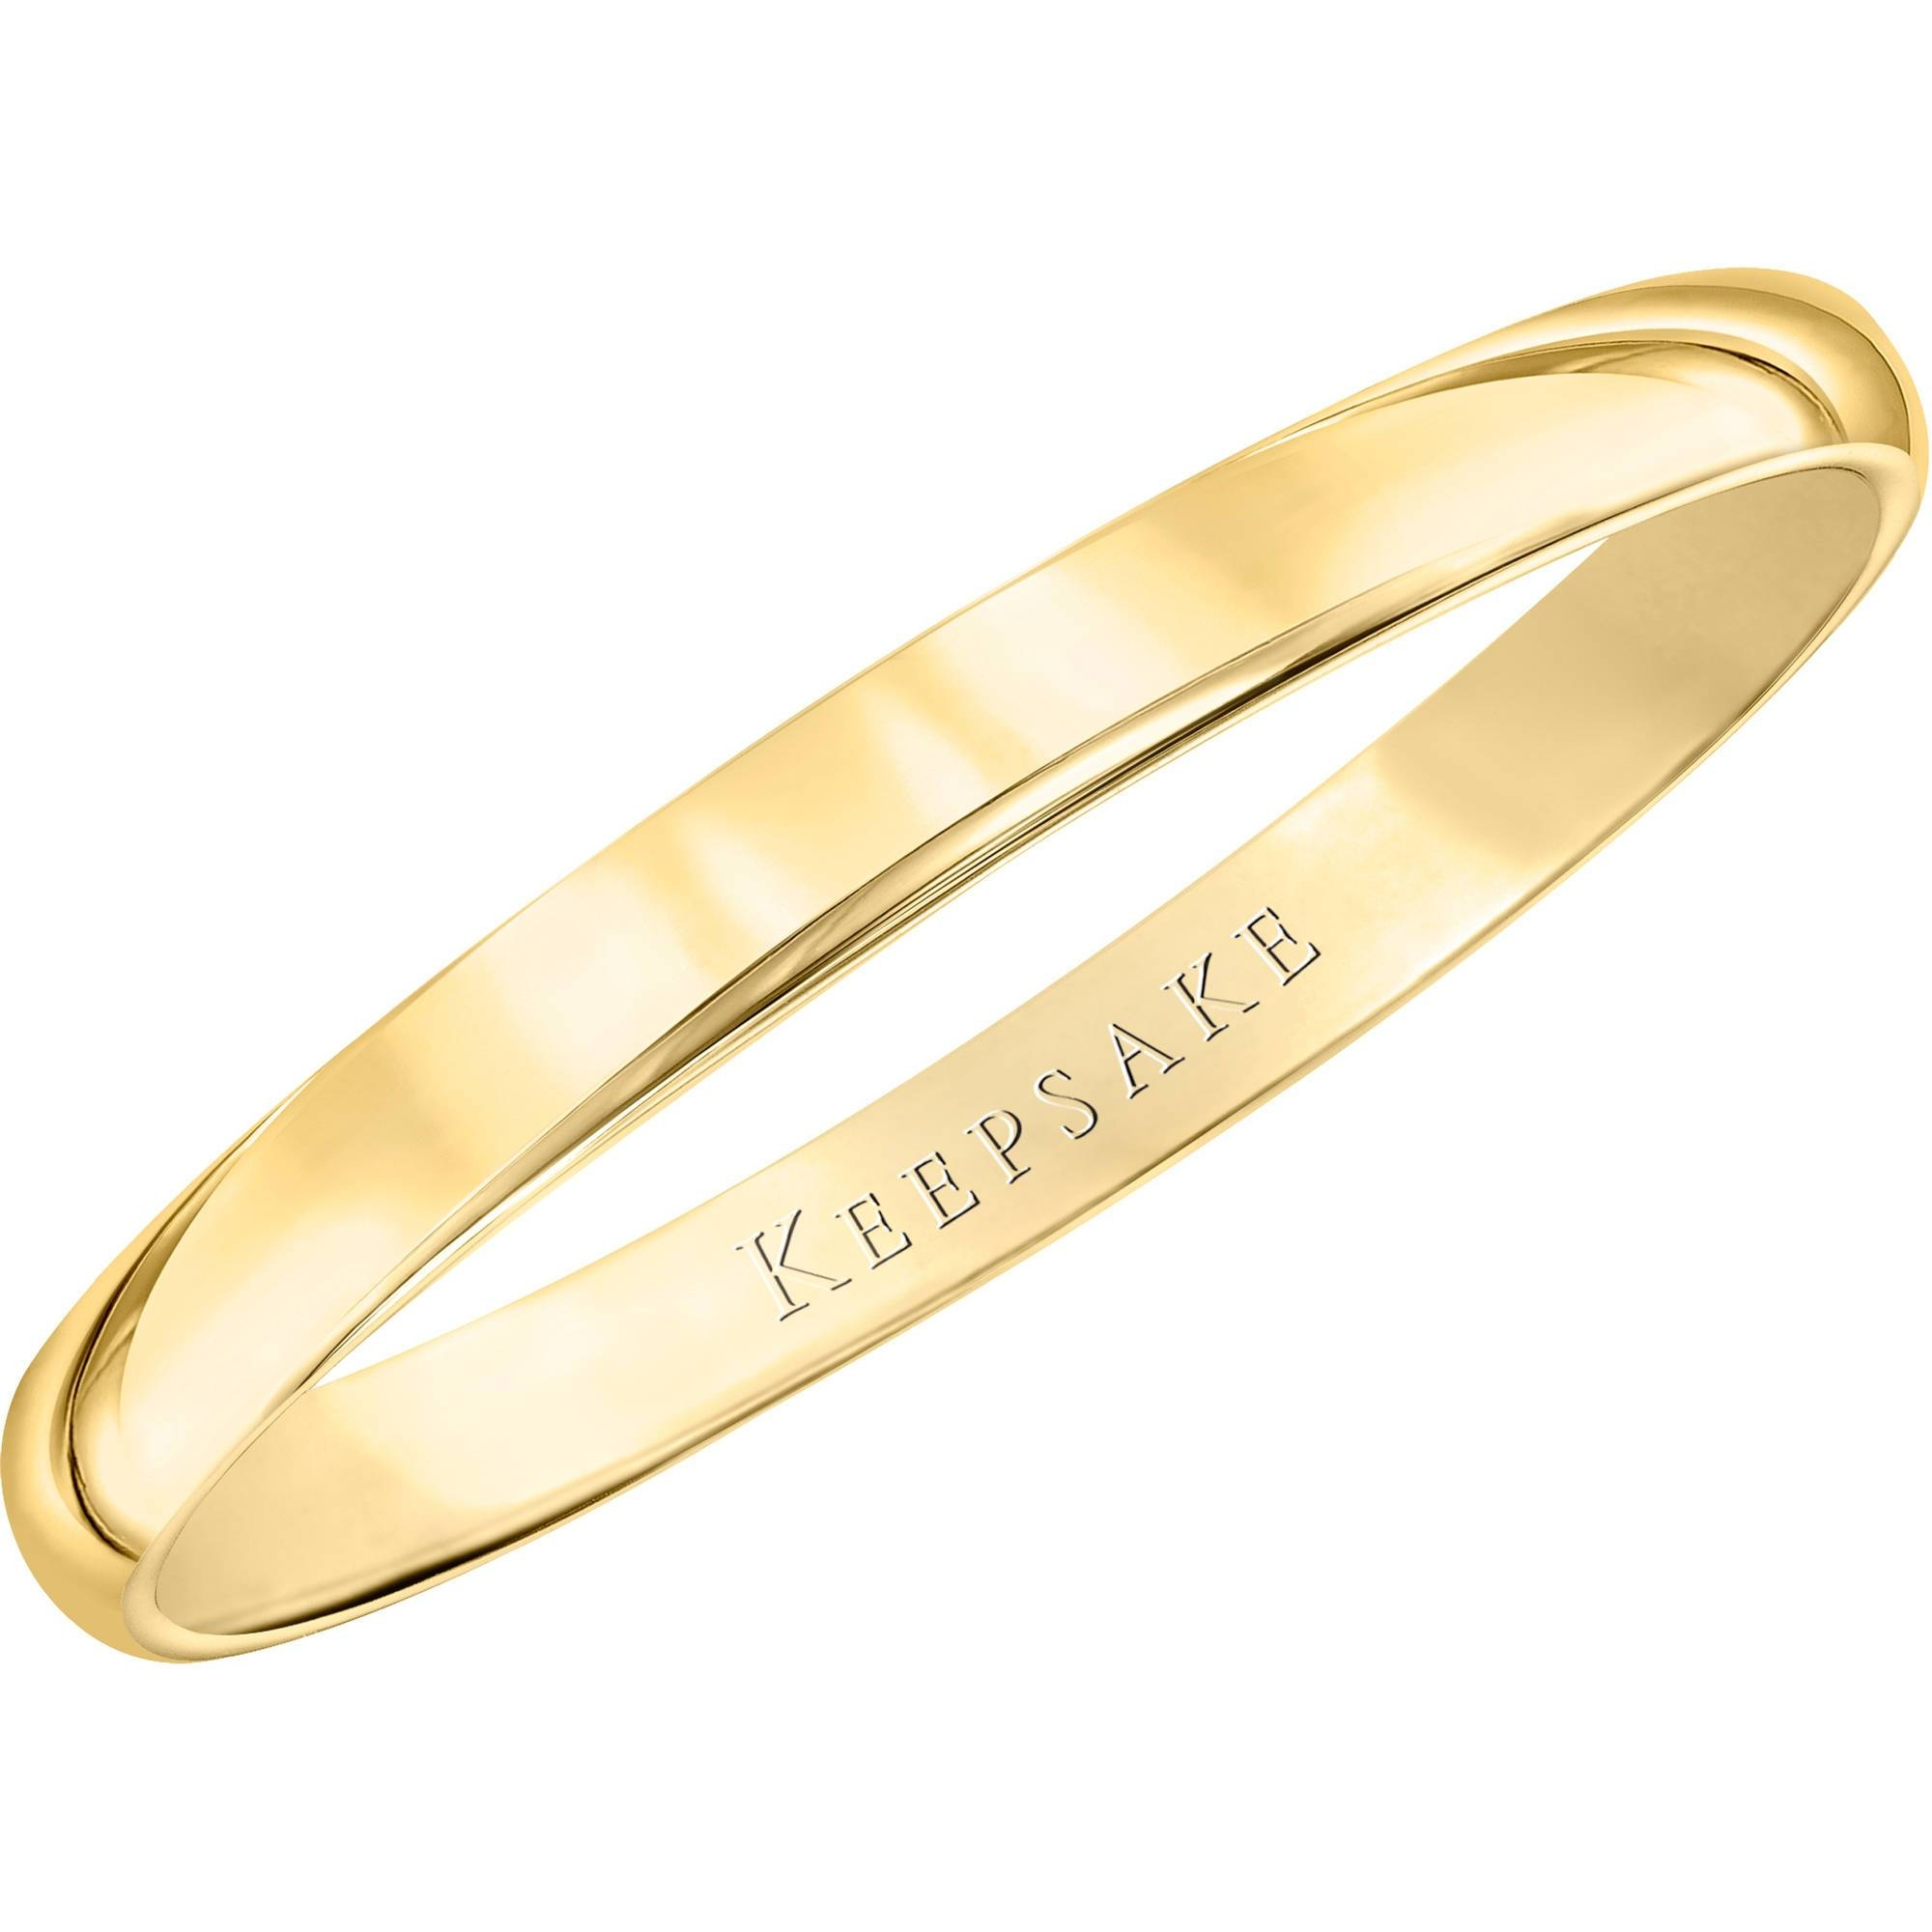 Keepsake 10Kt Yellow Gold Wedding Band With High Polish Finish Throughout Wedding Bands At Walmart (Gallery 10 of 15)